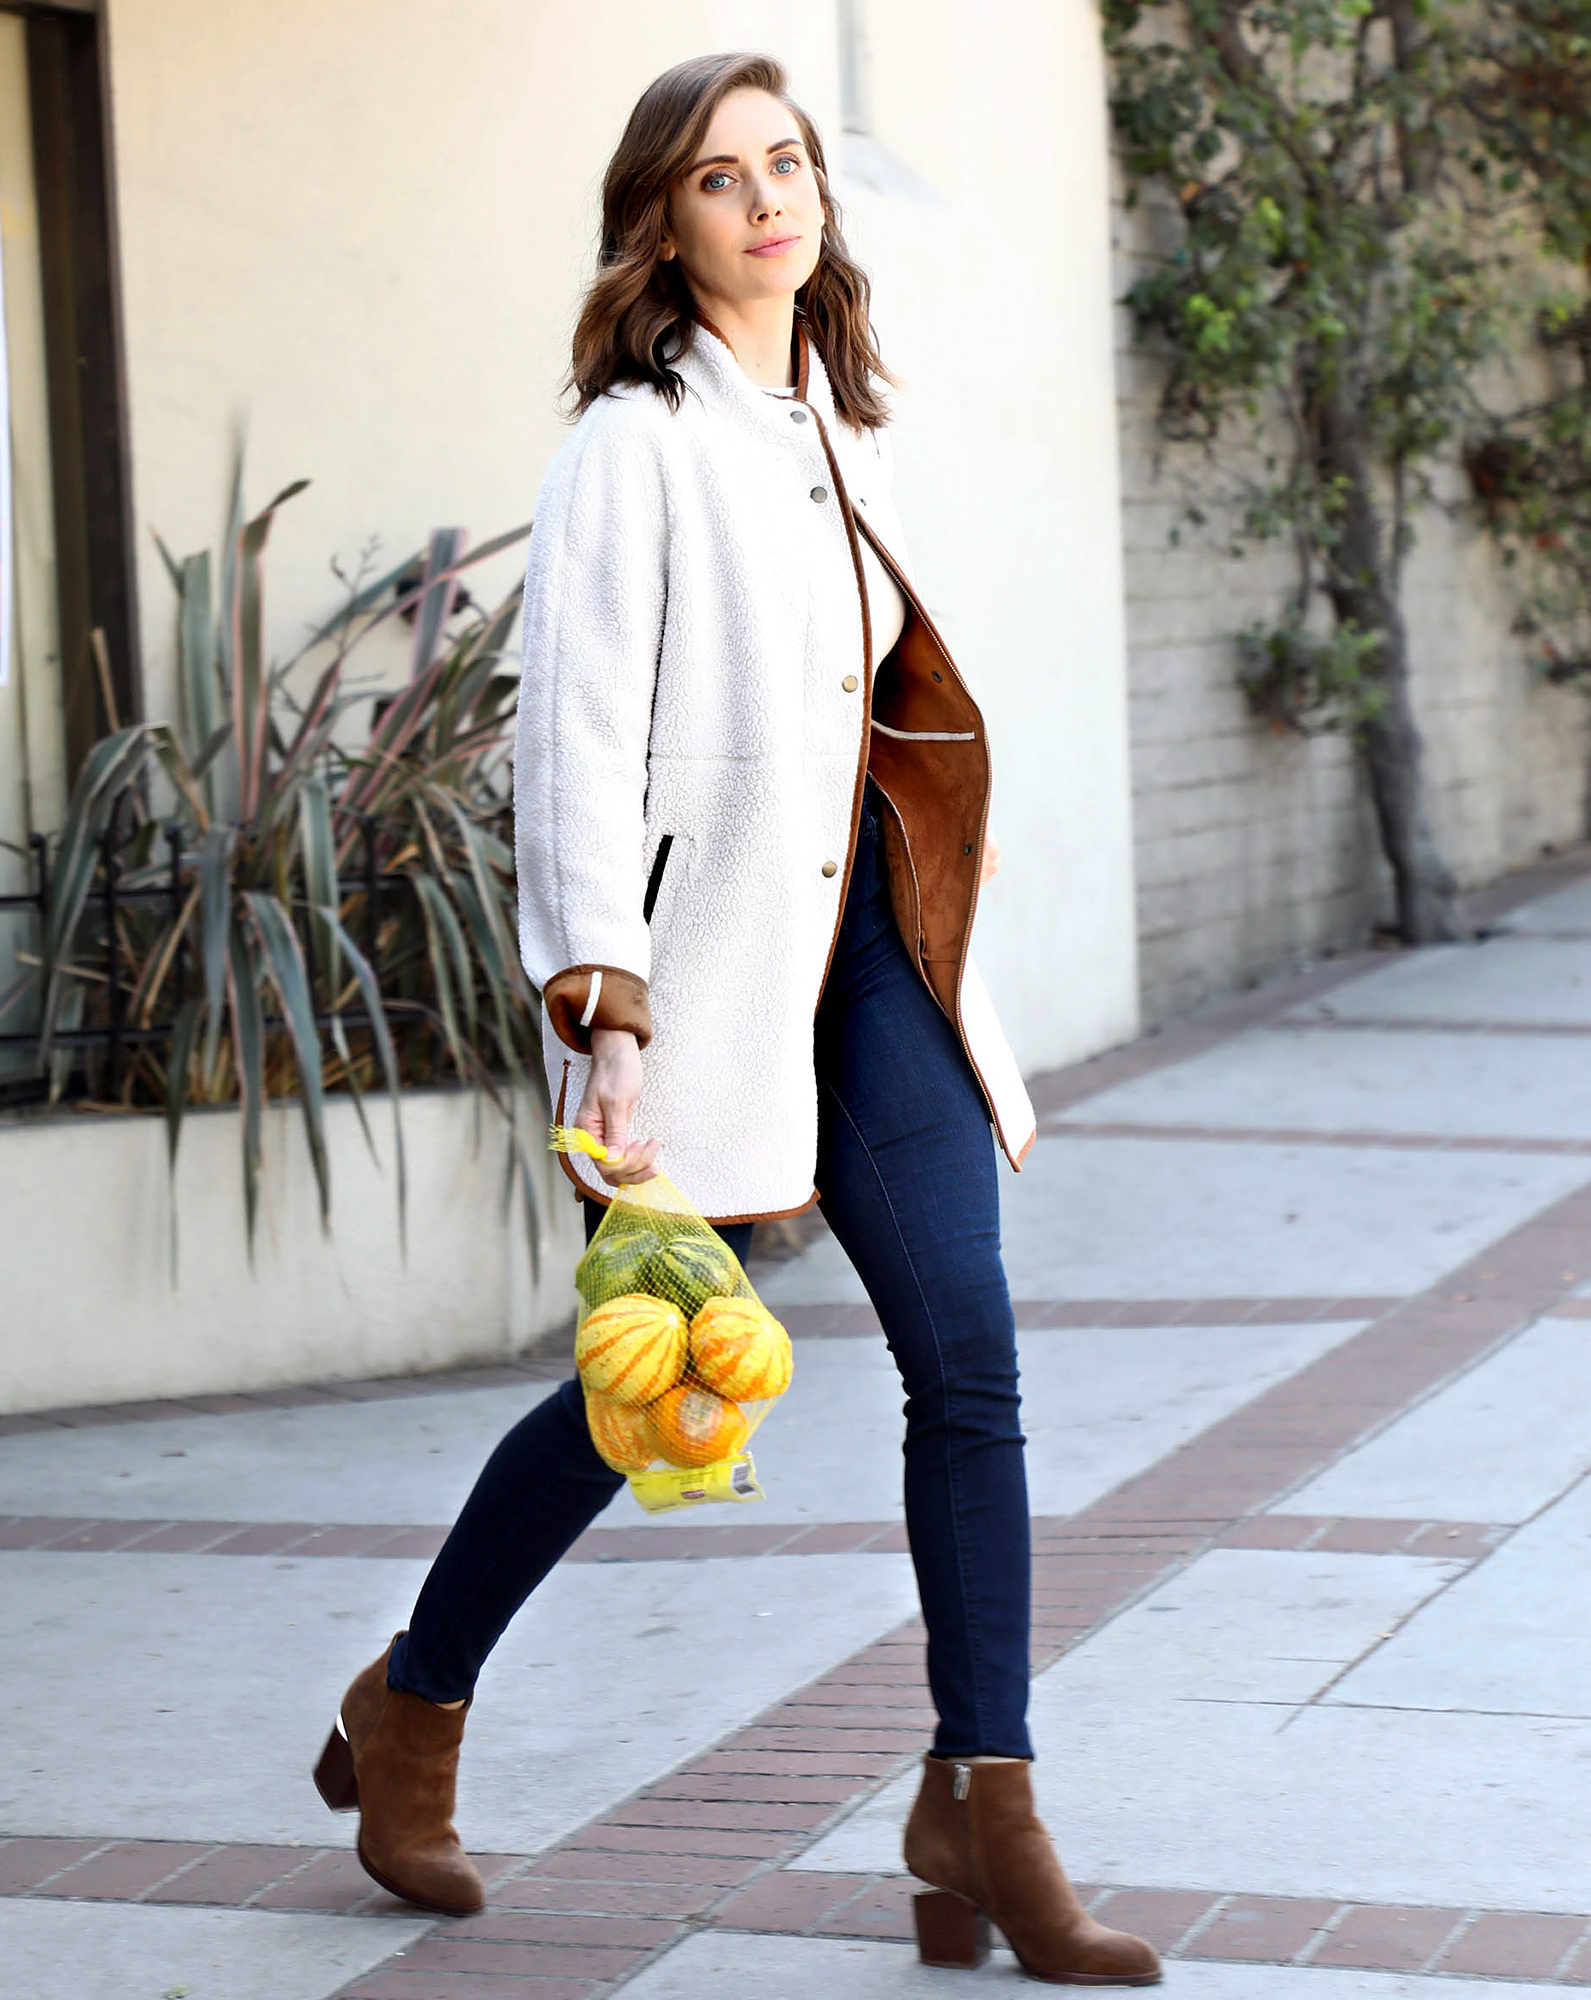 Alison Brie is Ready for Autumn in her Old Navy Faux-Suede Sherpa Coat